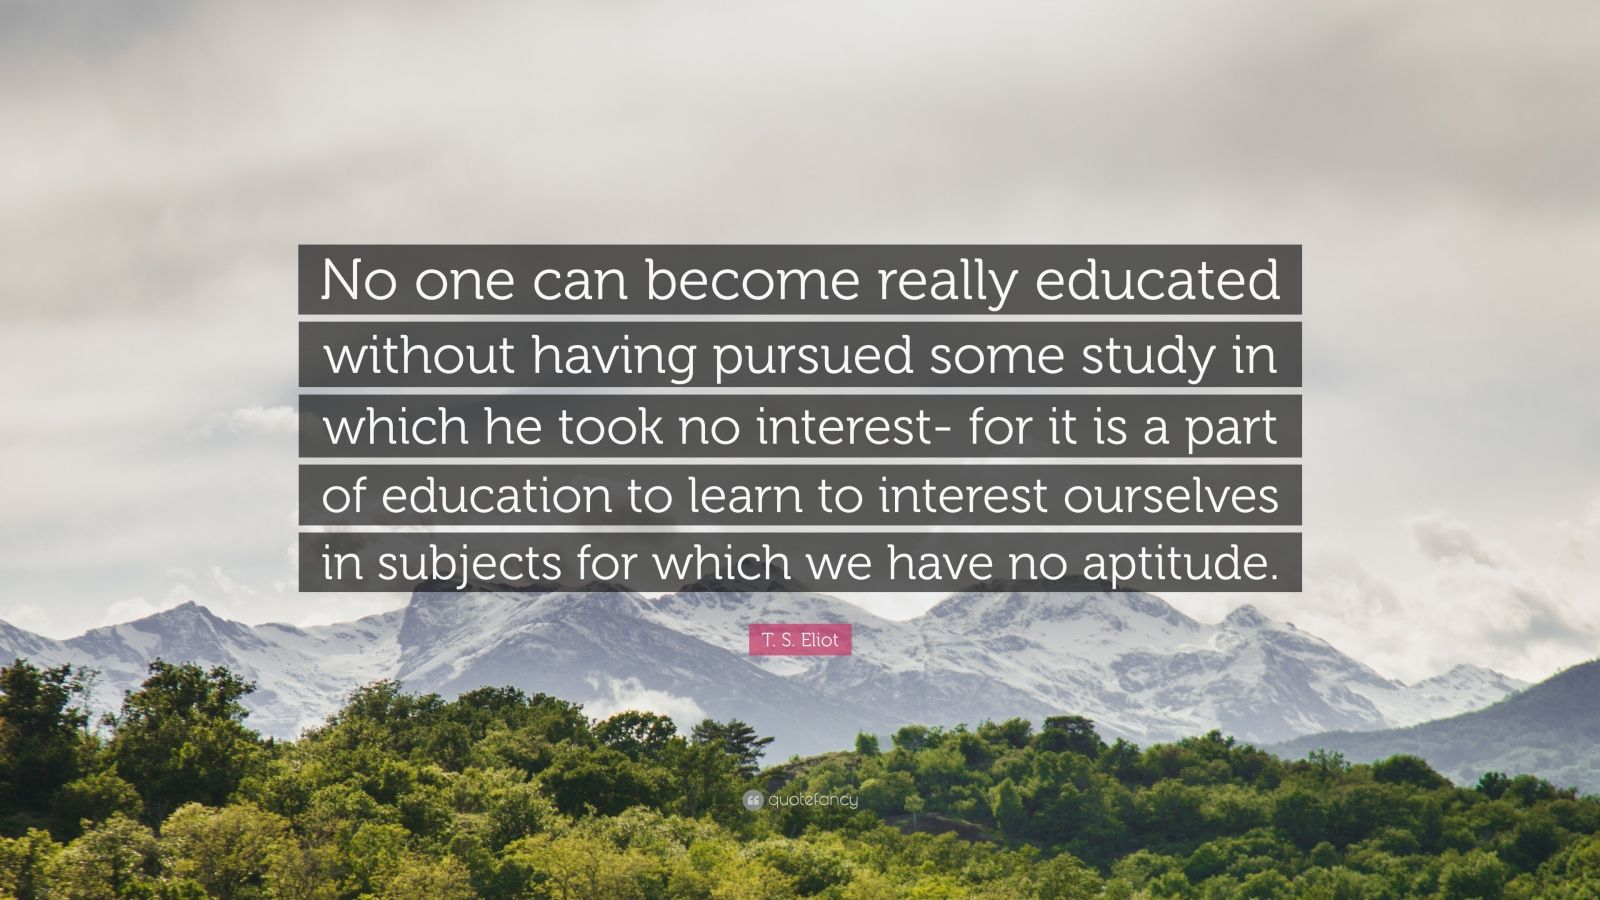 """T. S. Eliot Quote: """"No one can become really educated without having pursued some study in which he took no interest- for it is a part of education to learn to interest ourselves in subjects for which we have no aptitude."""""""